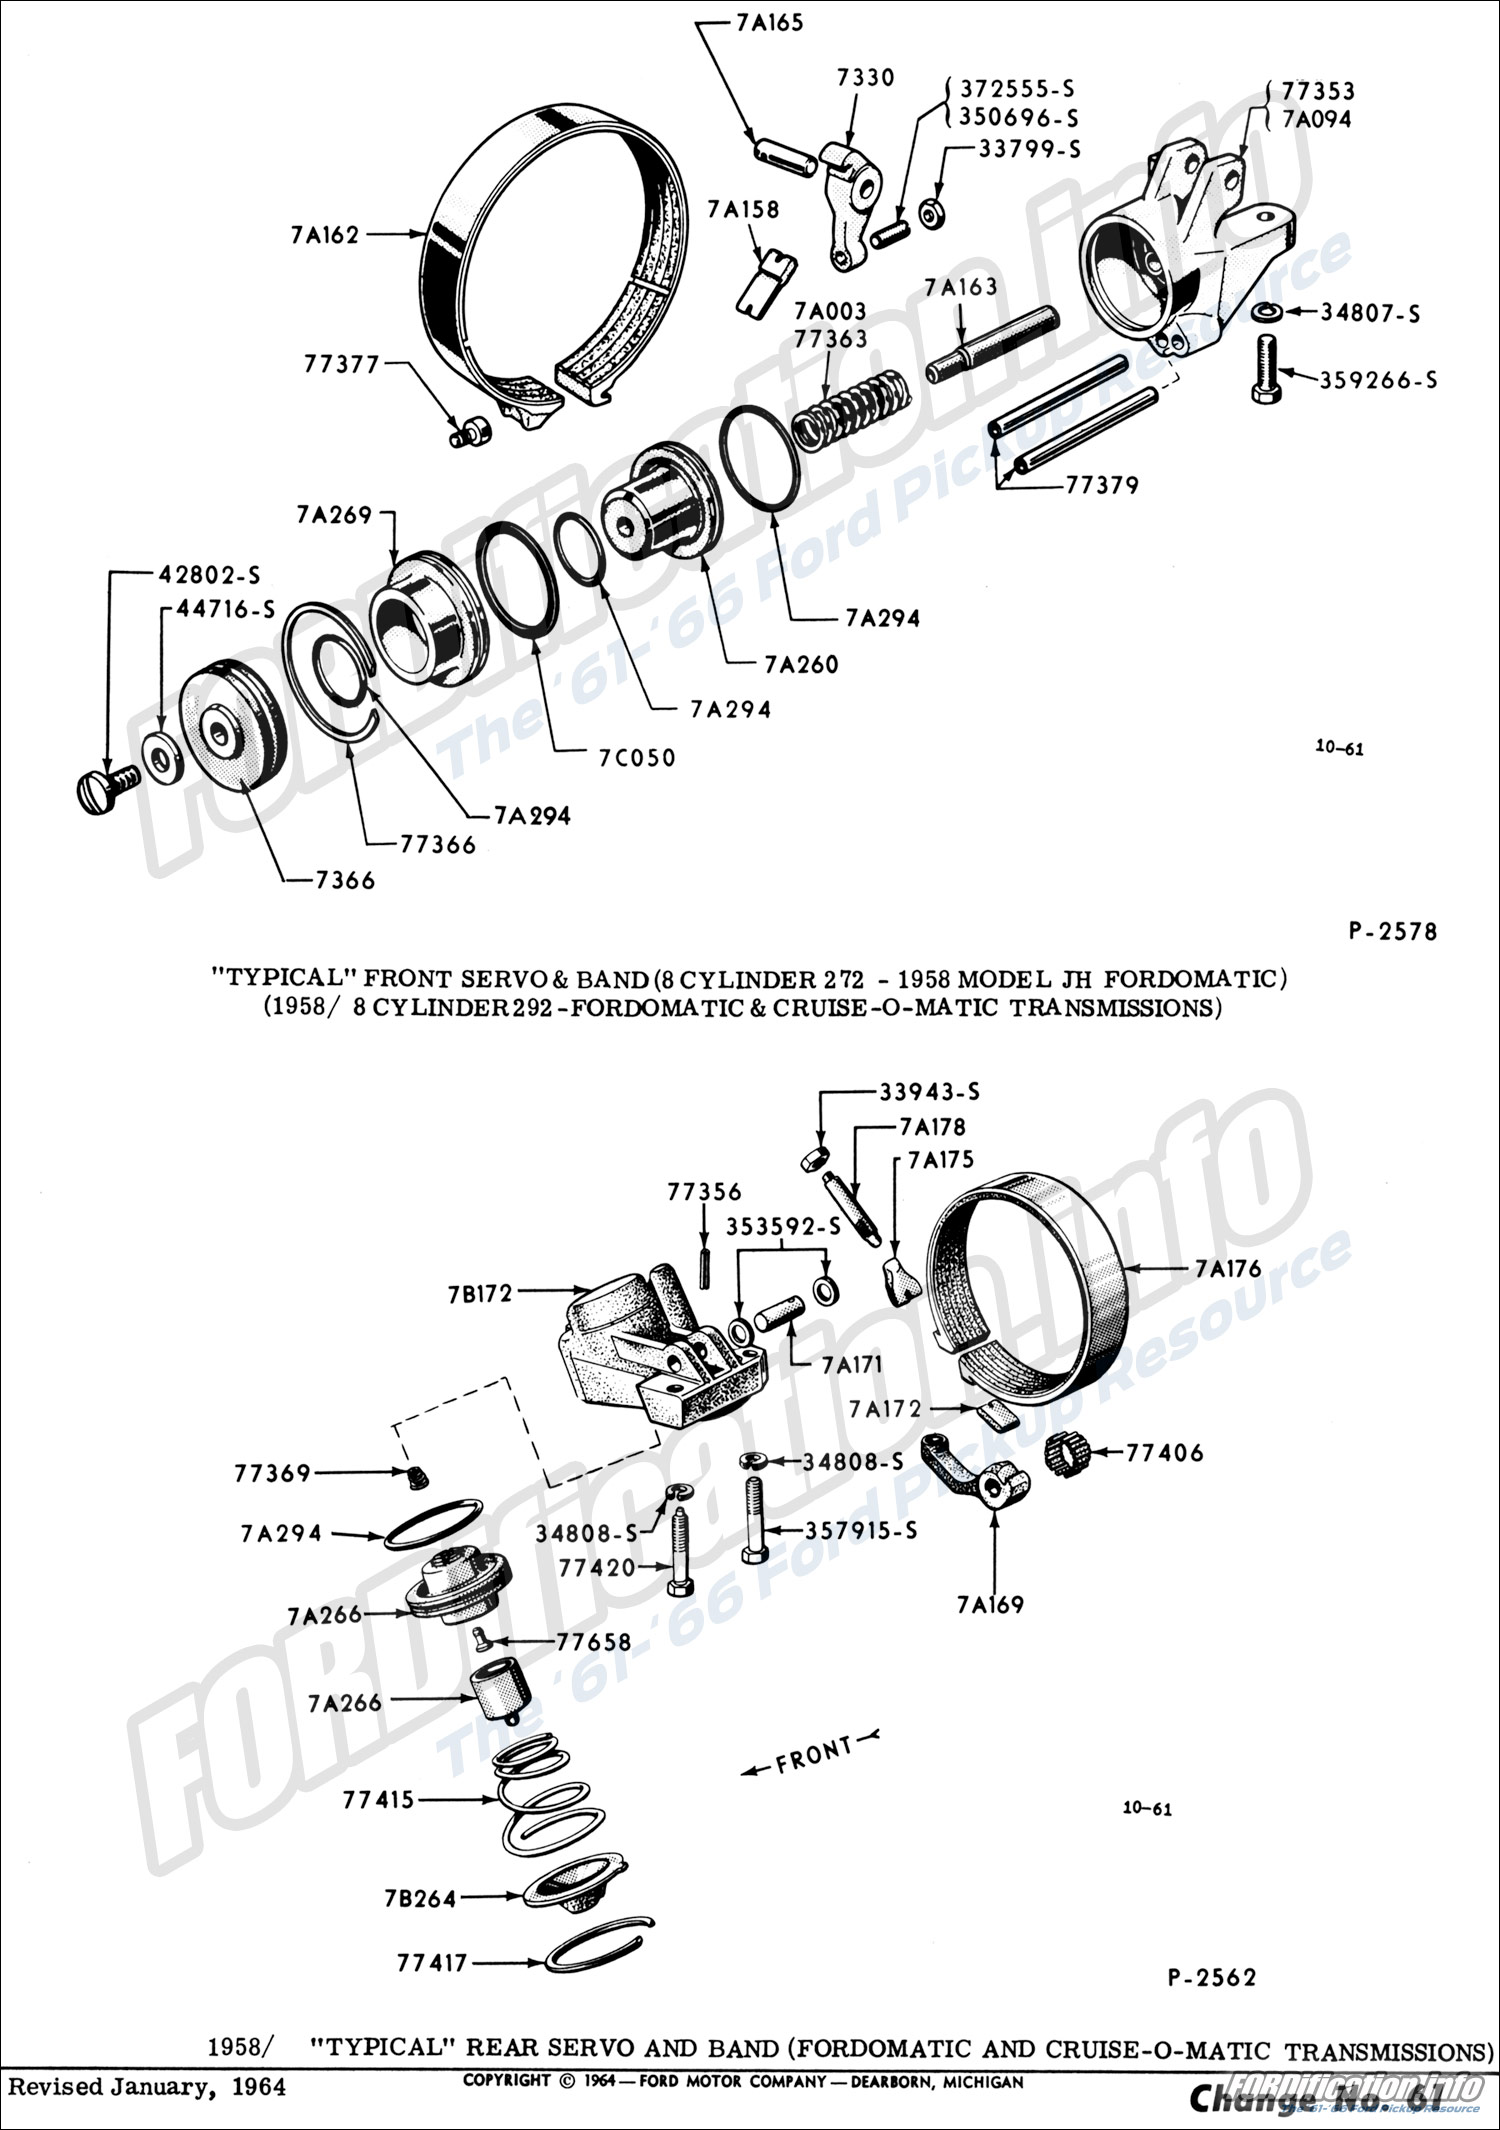 hight resolution of  1958 8 cylinder 292 fordomatic cruise o matic transmissions